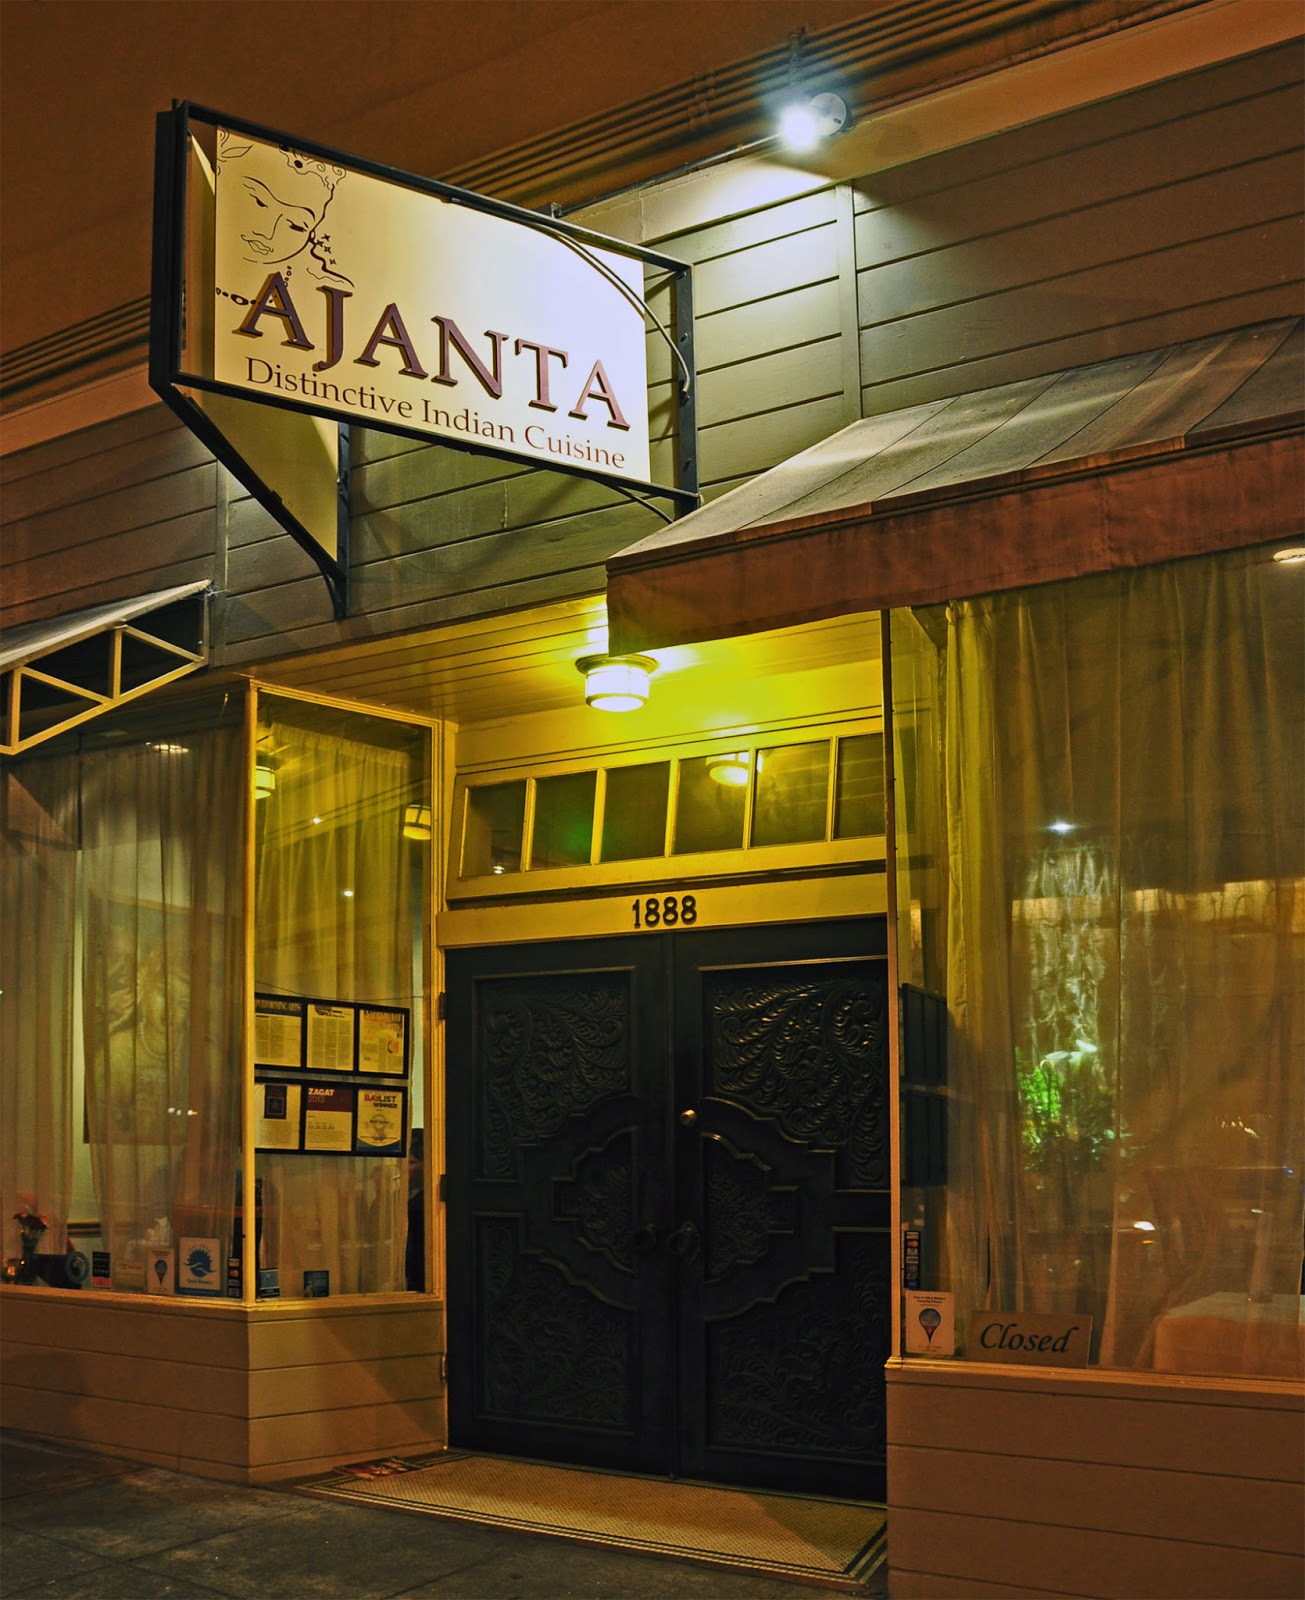 Chef 39 s tasting menu at ajanta restaurant showcases the best of the house art and entertain me for Ajanta indian cuisine